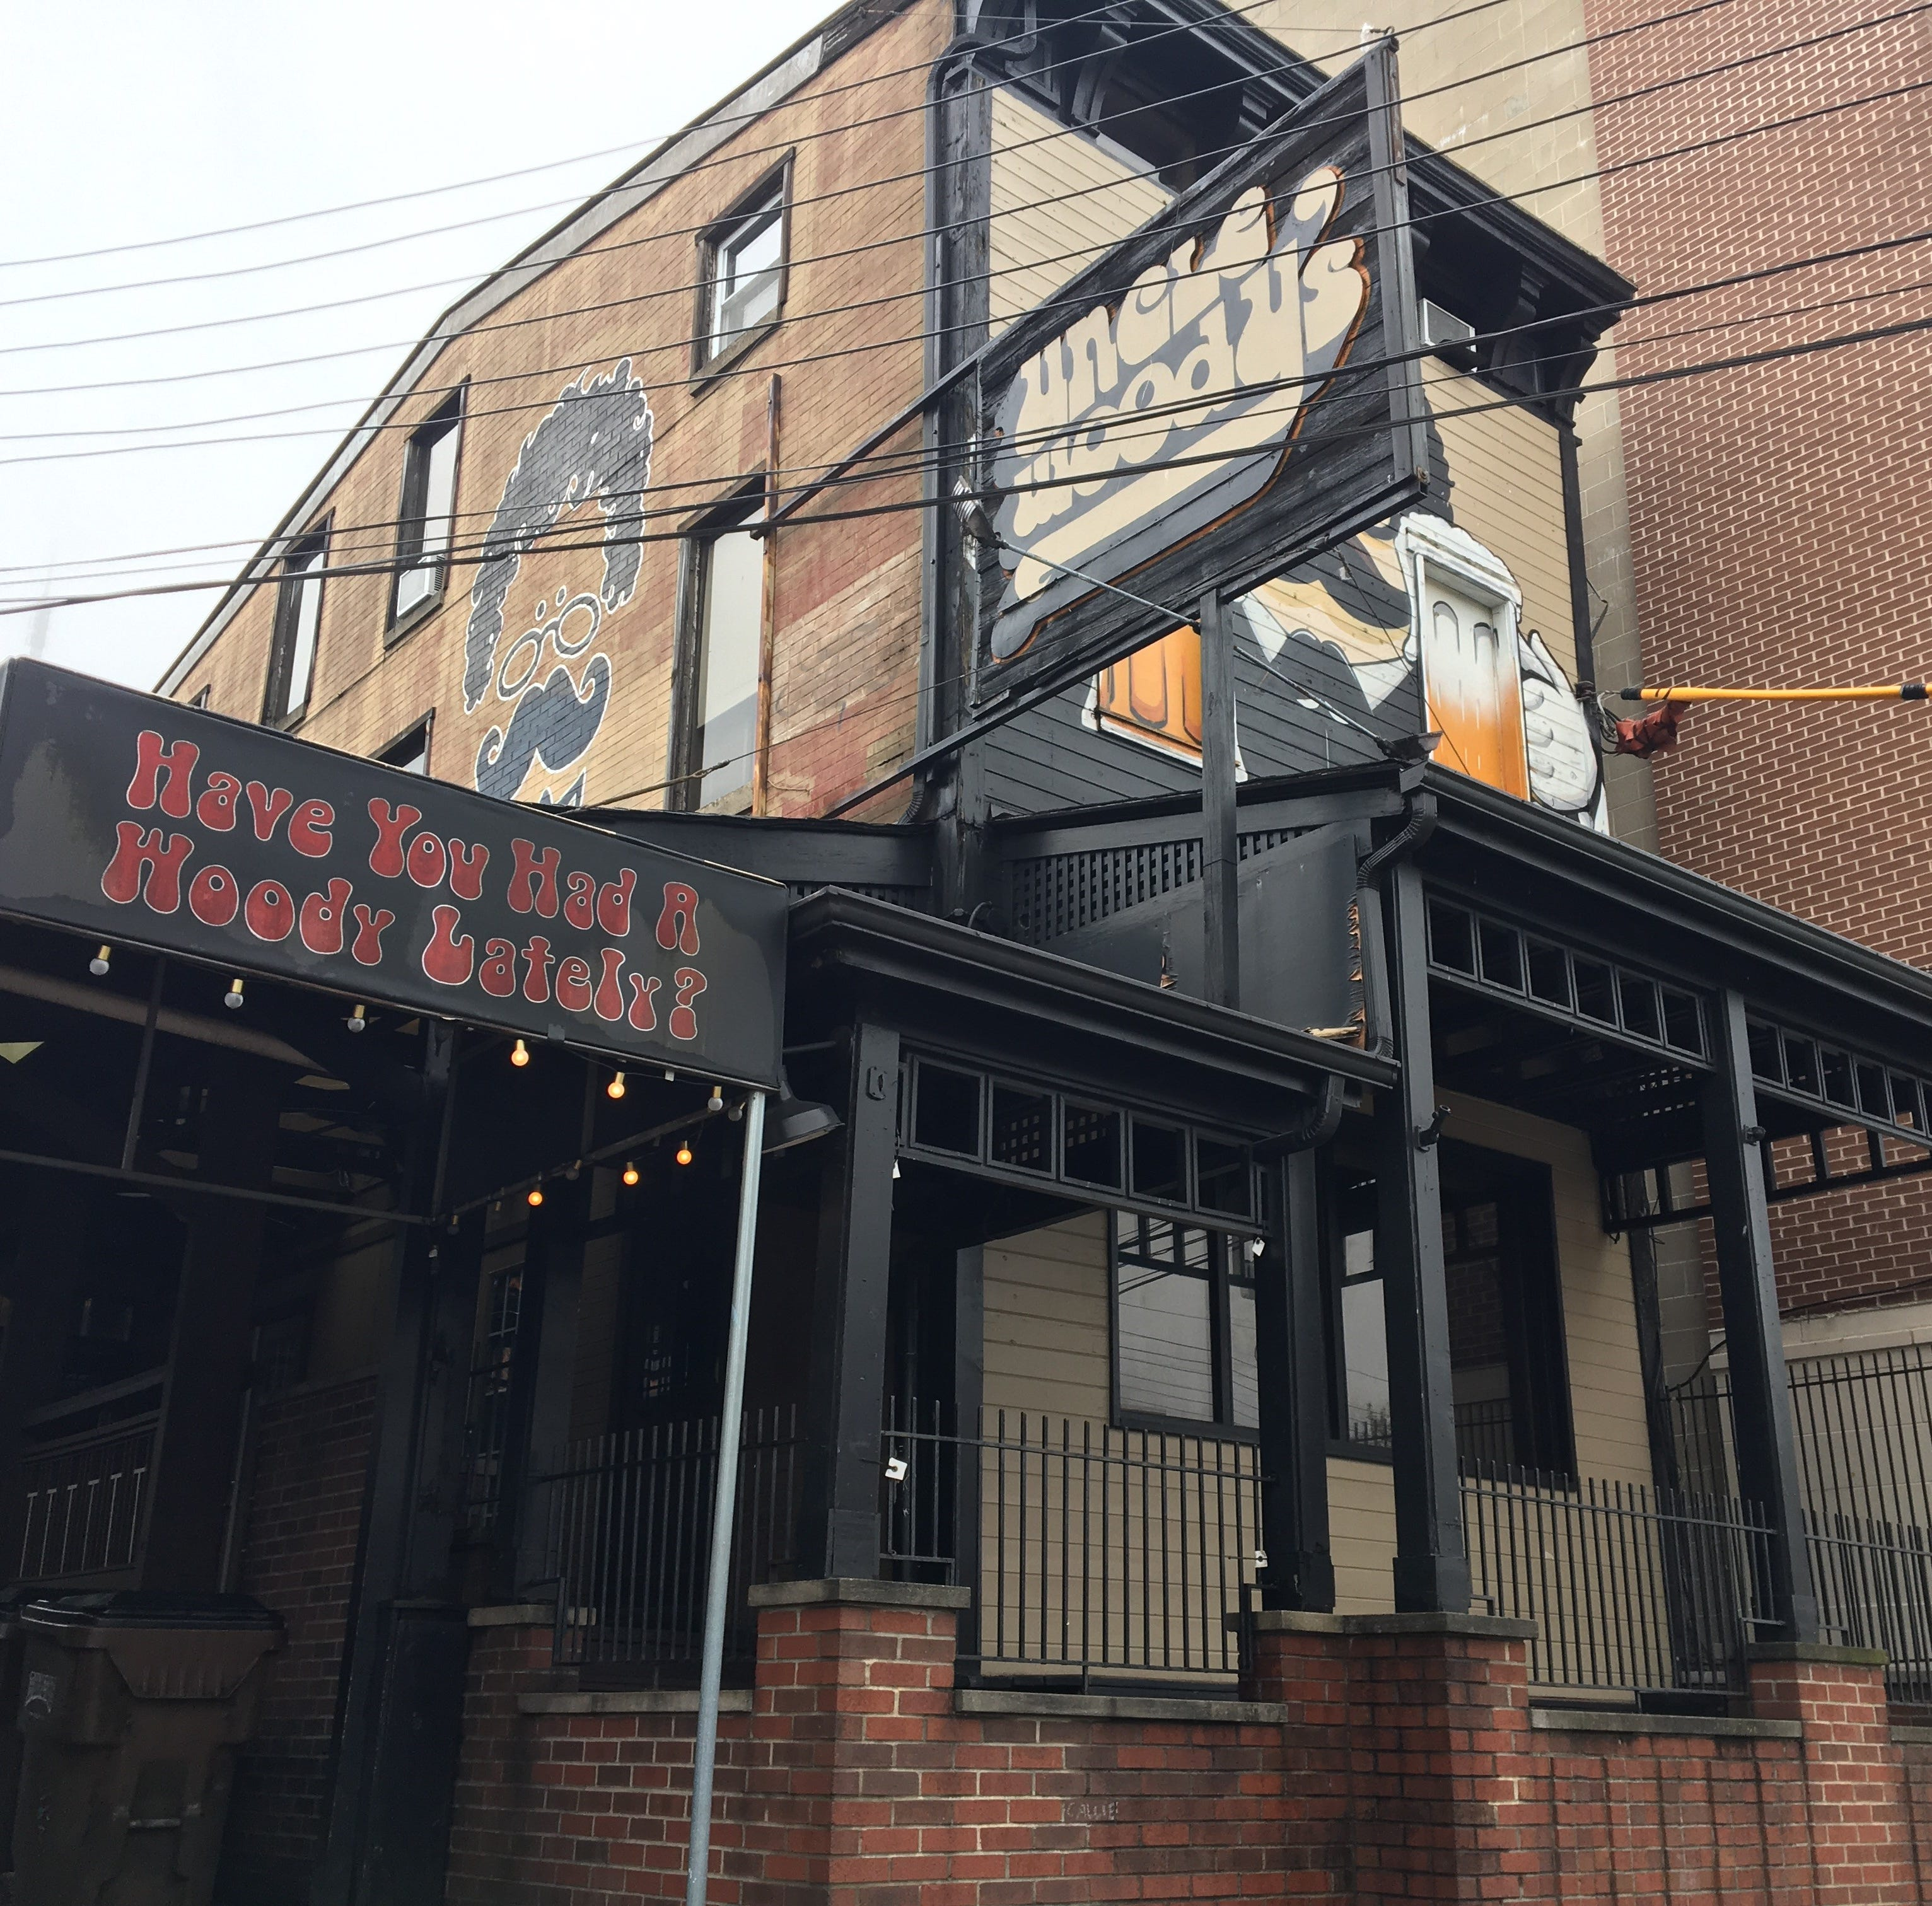 City protests some liquor licenses, but not for bar with most underage drinking violations